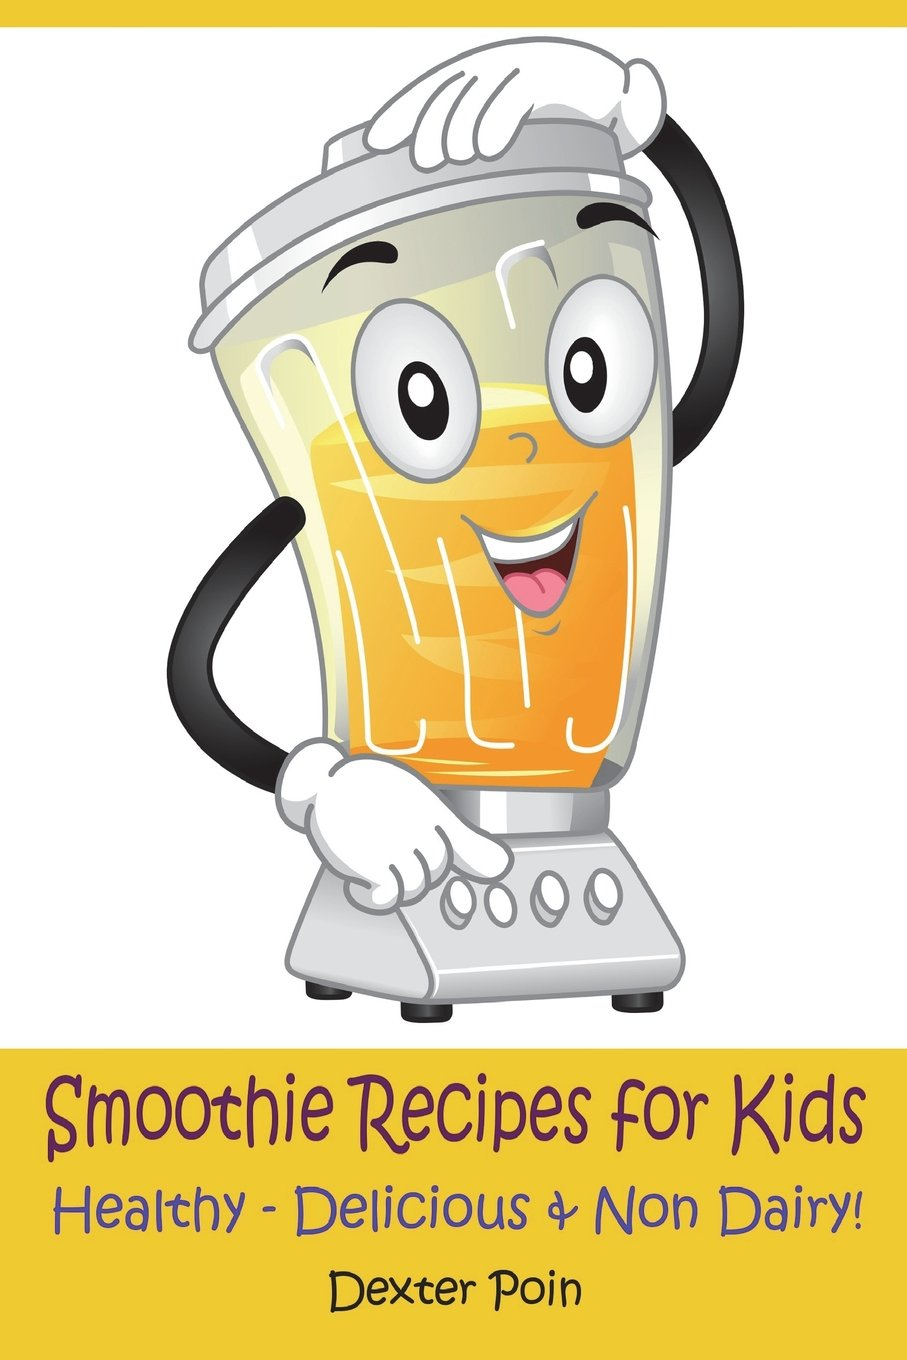 Smoothie Recipes for Kids: Healthy - Delicious - & Non Dairy! (Volume 1) Paperback – July 5, 2018 Dexter Poin 172237621X COOKING / Cooking with Kids